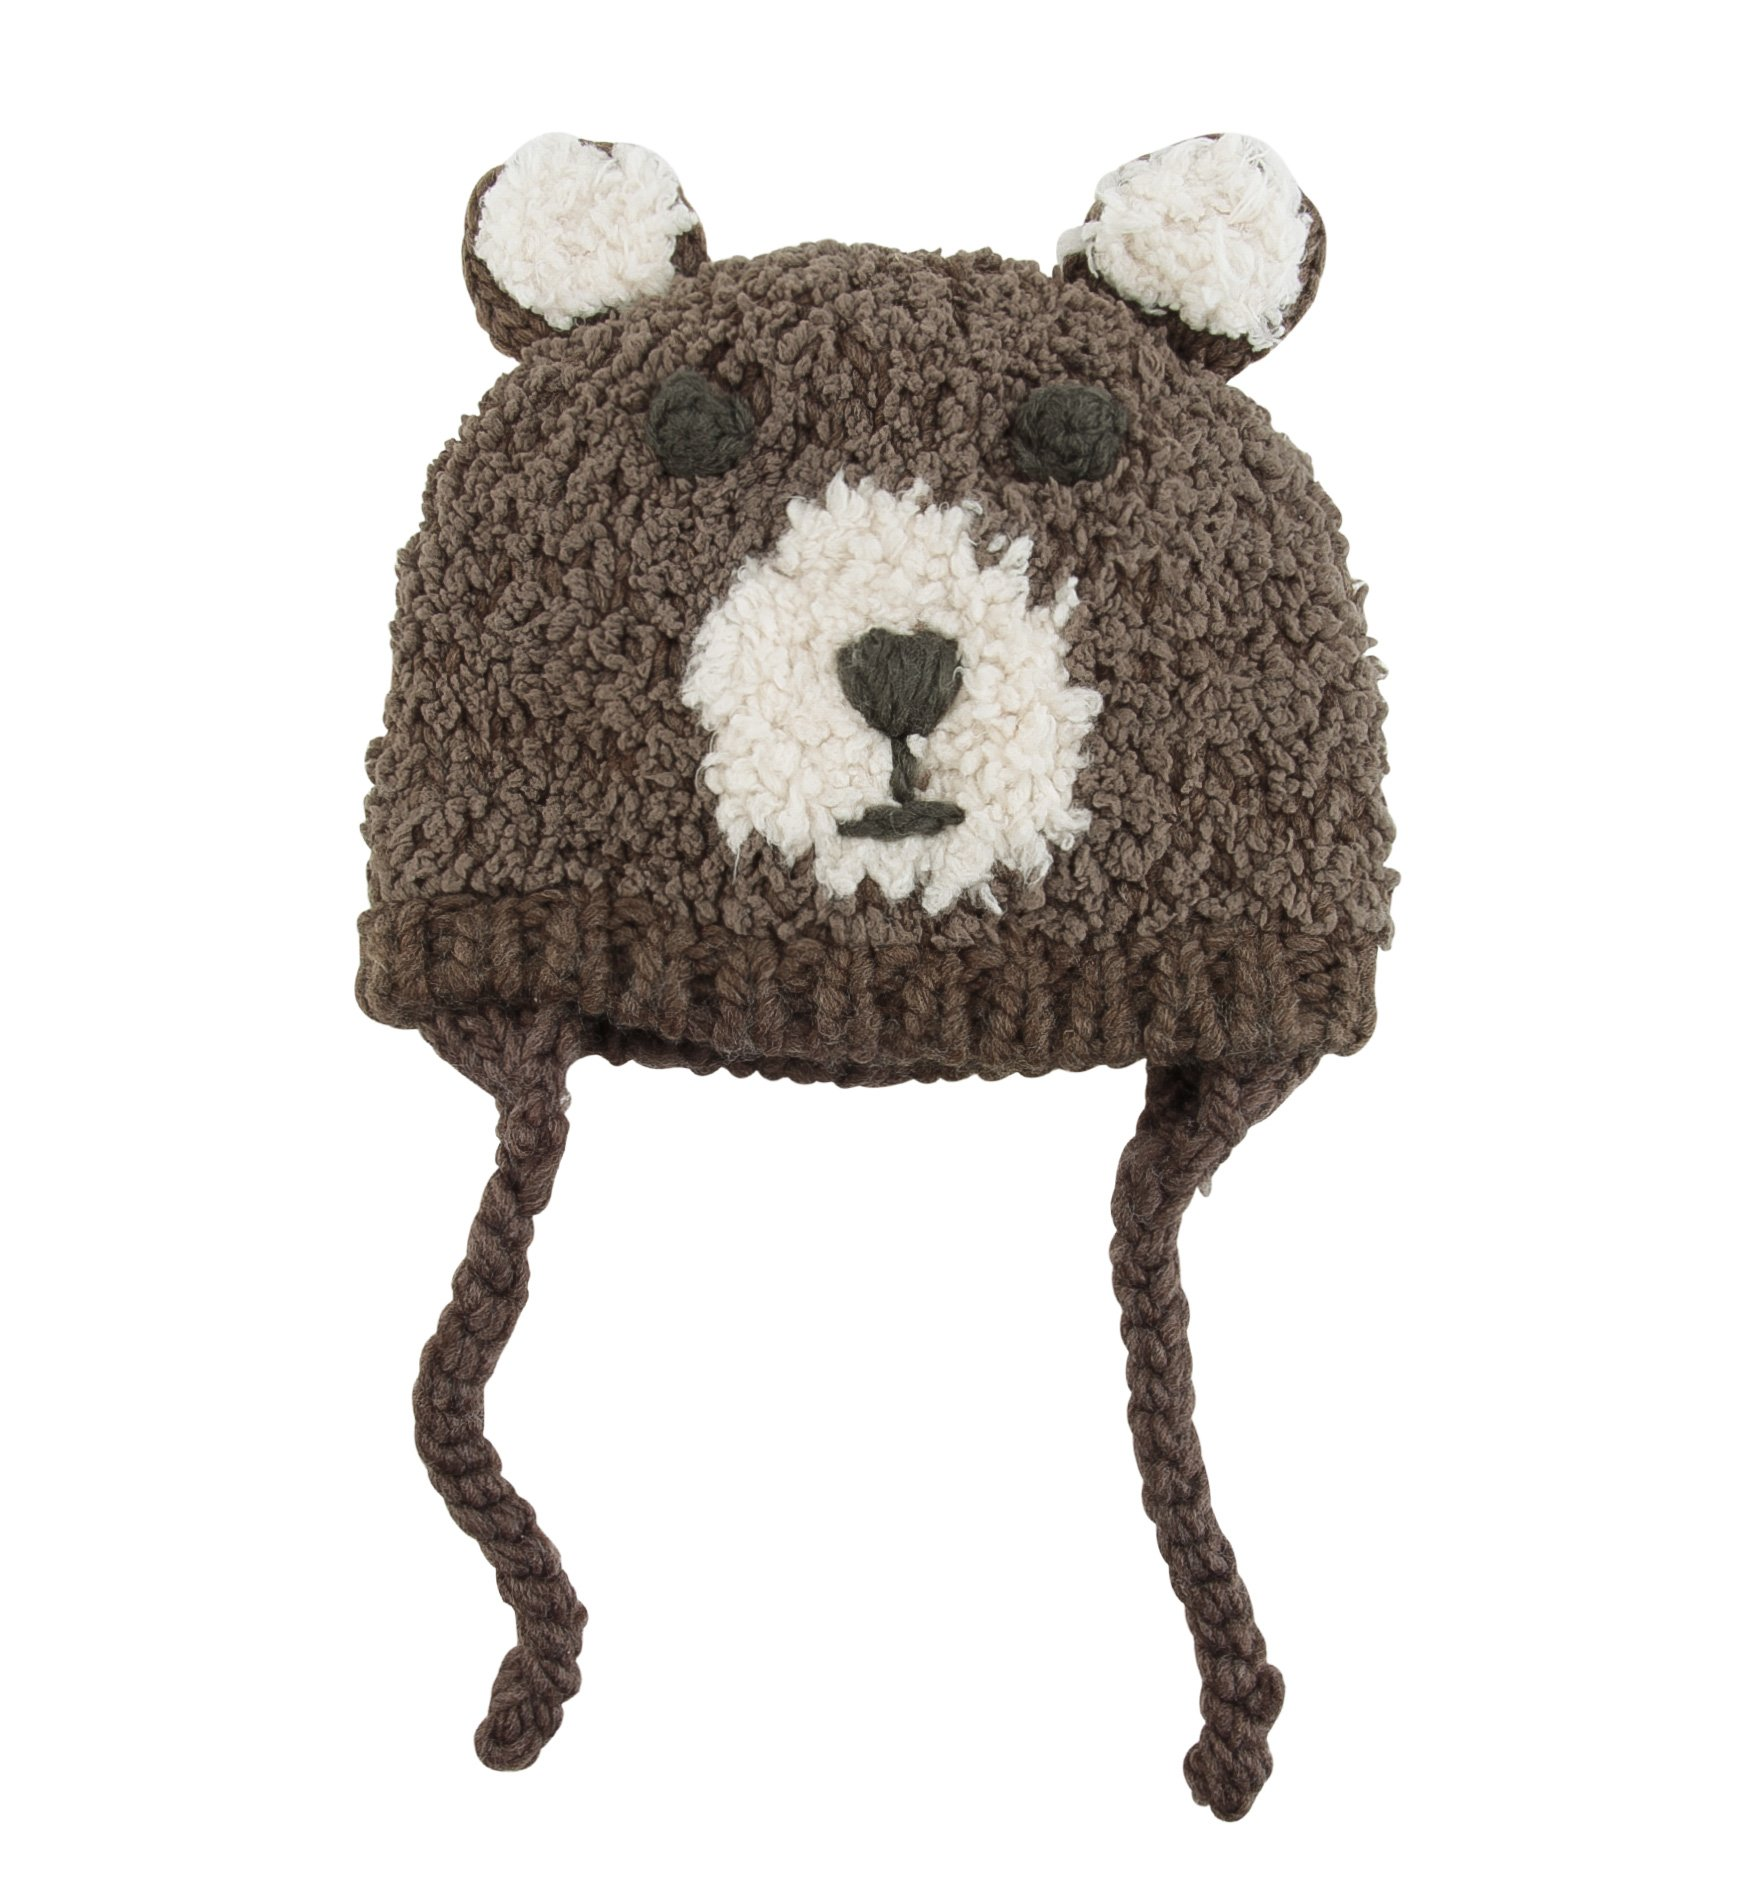 SUMOLUX Baby Toddlers Warm Earflap Hood Beanies Hat Knitted Brown bear Animal Ears Hats Lined Beanie Crochet Handmade Cap for Winter